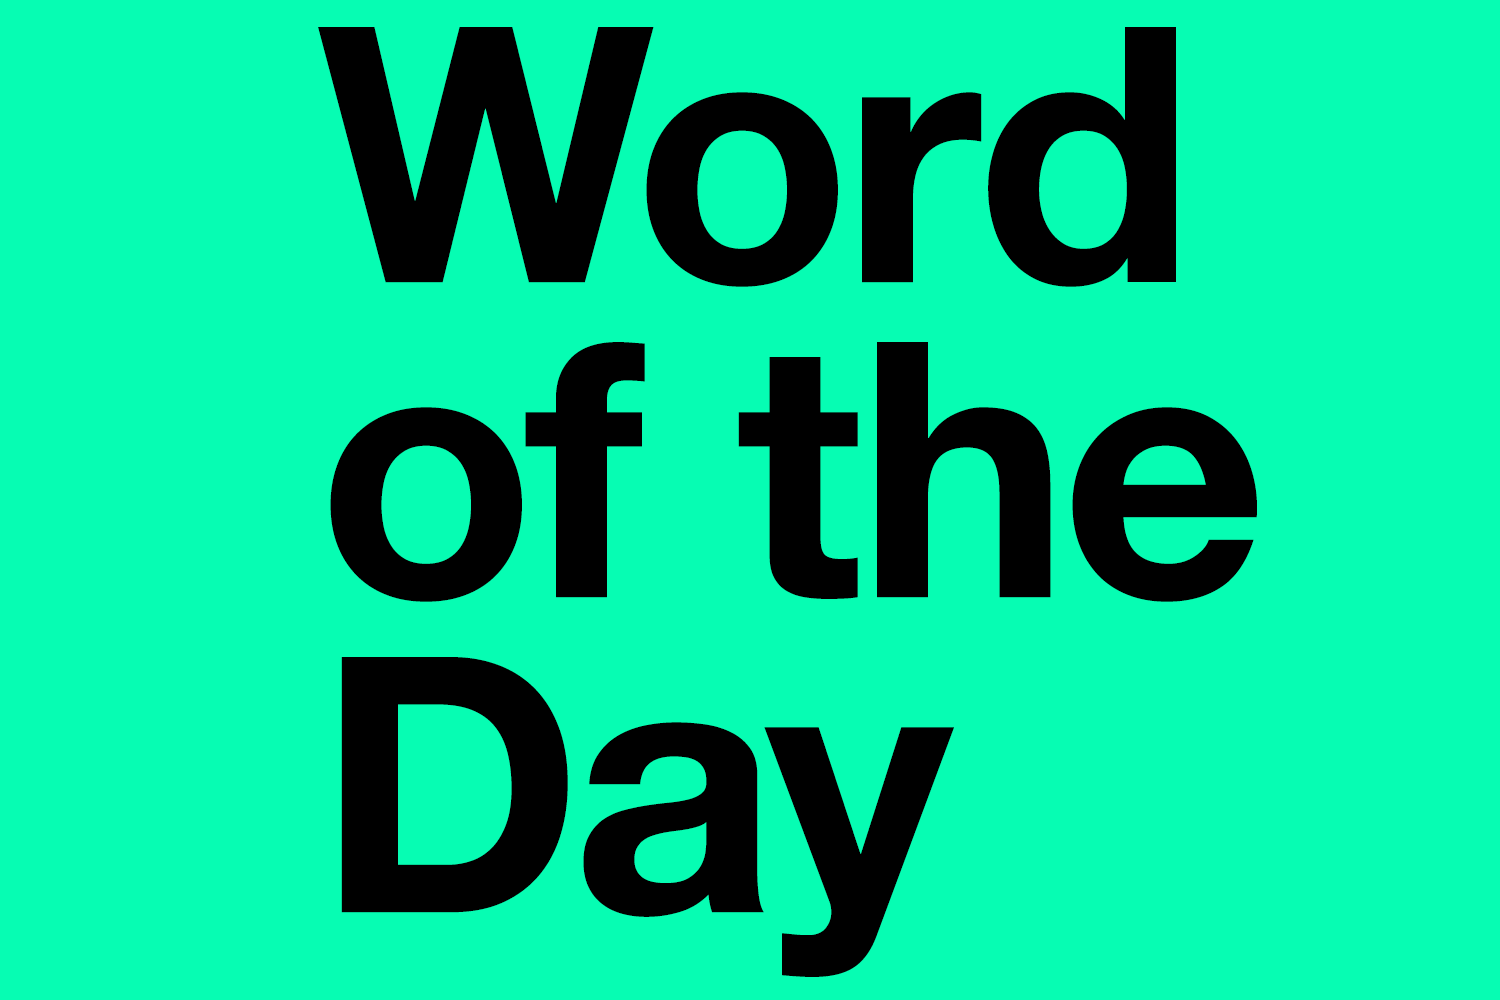 Word-of-the-Day-website-title.png